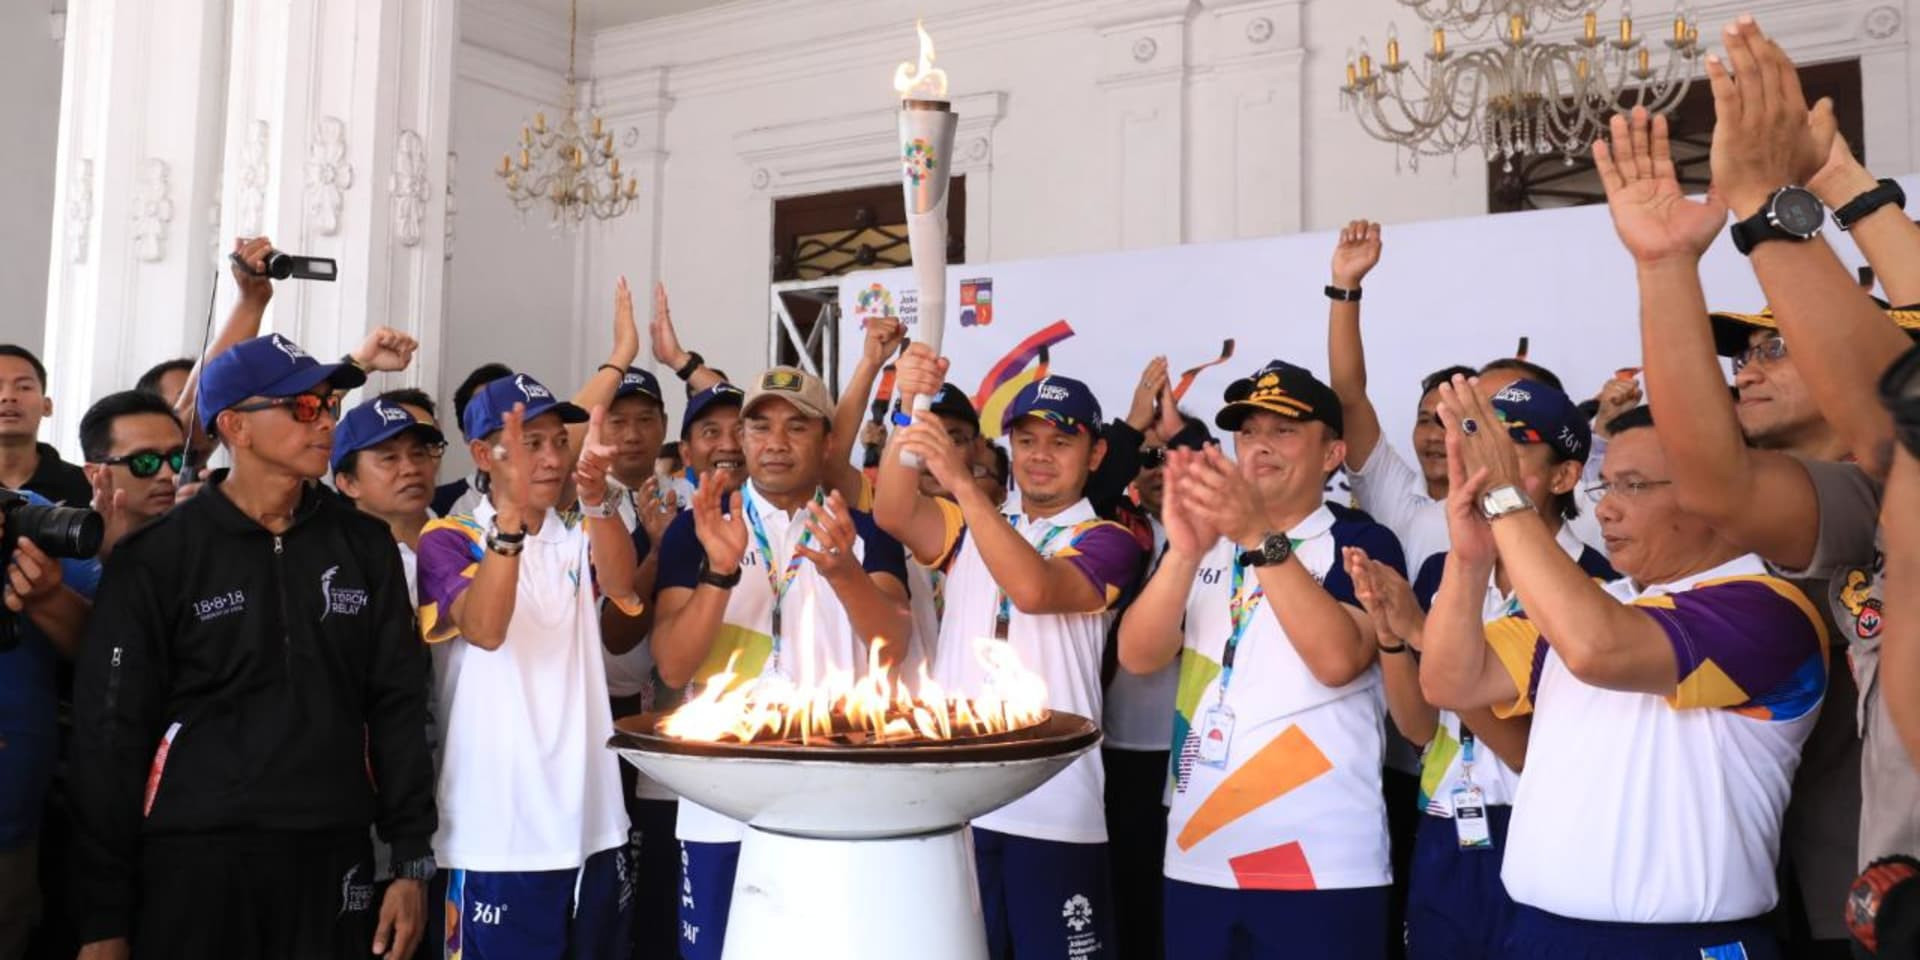 The 2018 Asian Games Torch will complete its Relay when it arrives in Jakarta today ©Asian Games 2018